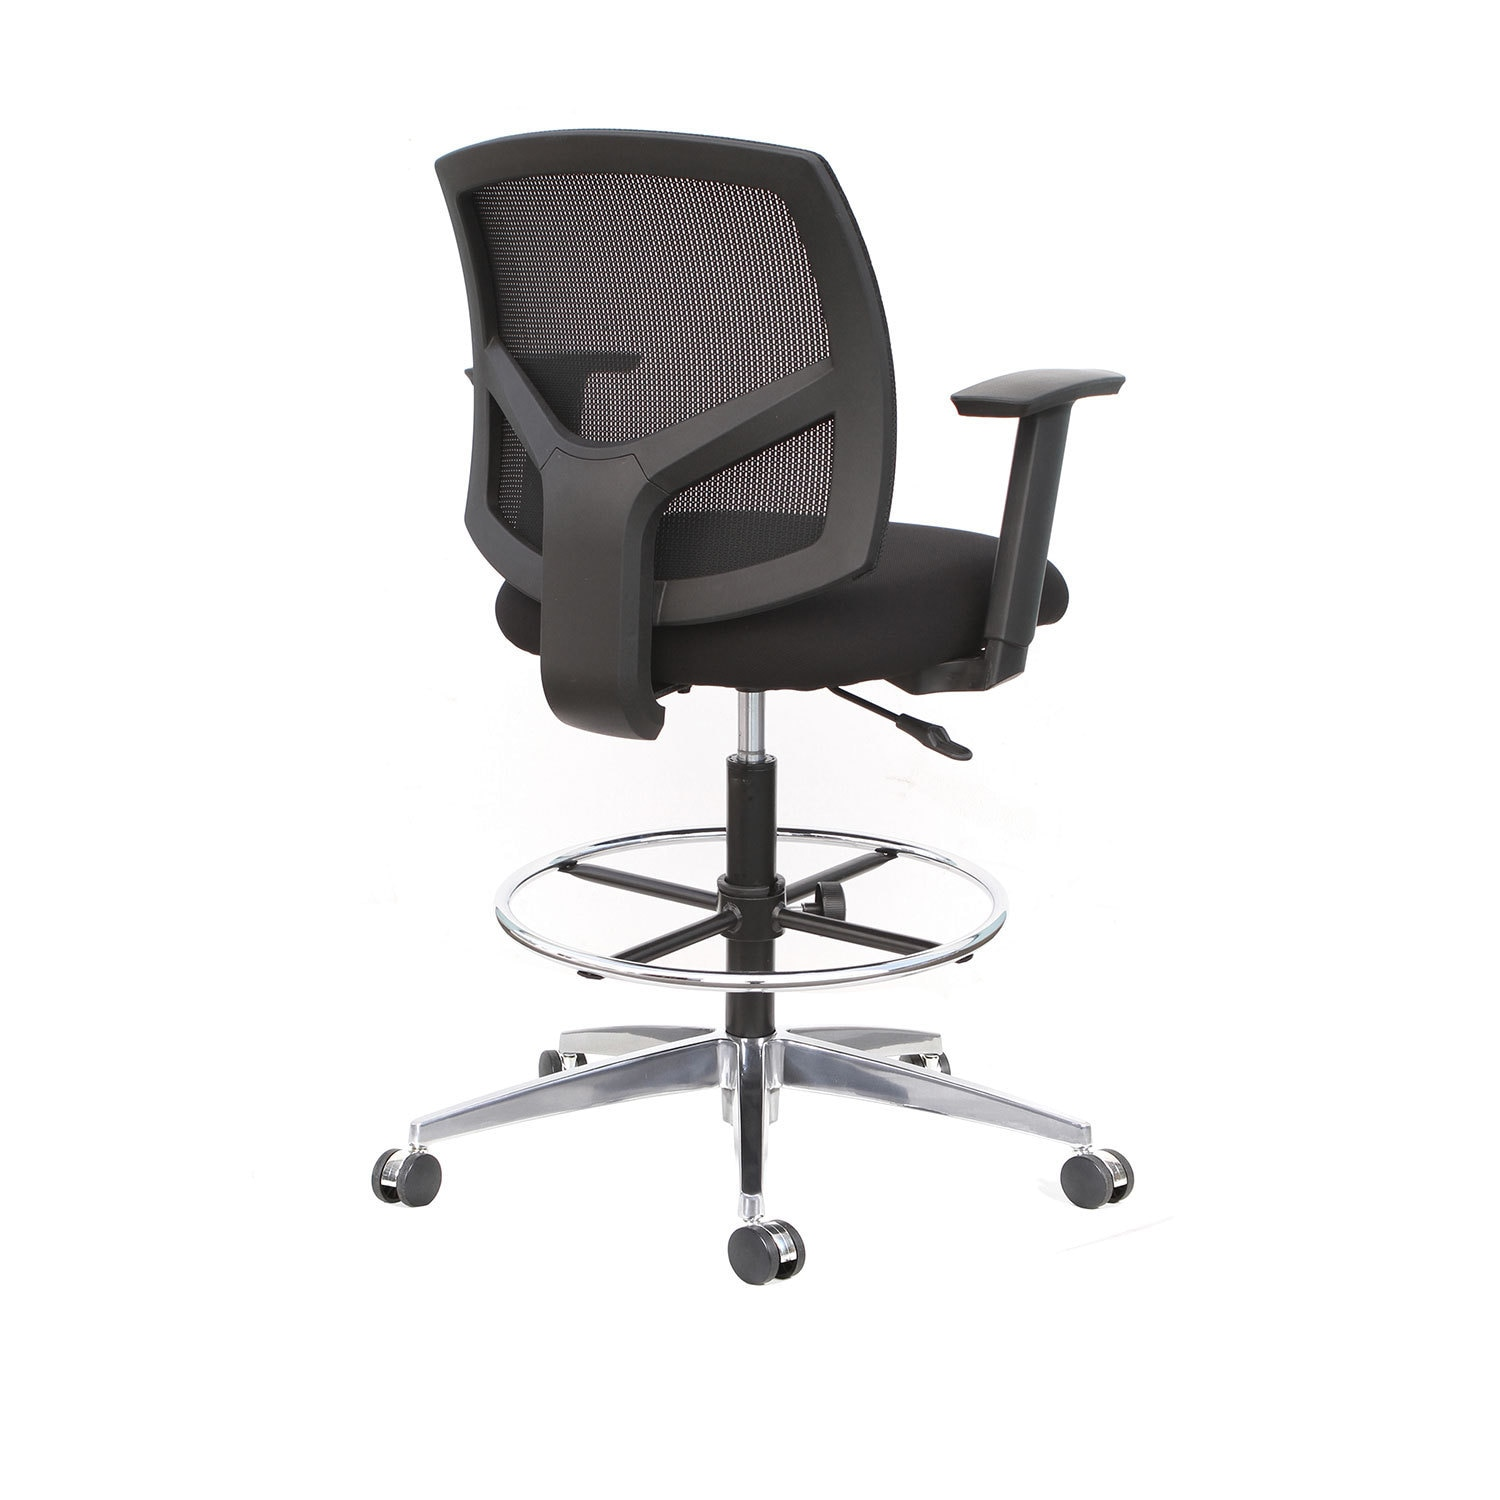 Shop Thorntonu0027s Office Supplies Forge Black Mid Back Mesh Back Drafting  Stool   Free Shipping Today   Overstock   14676361